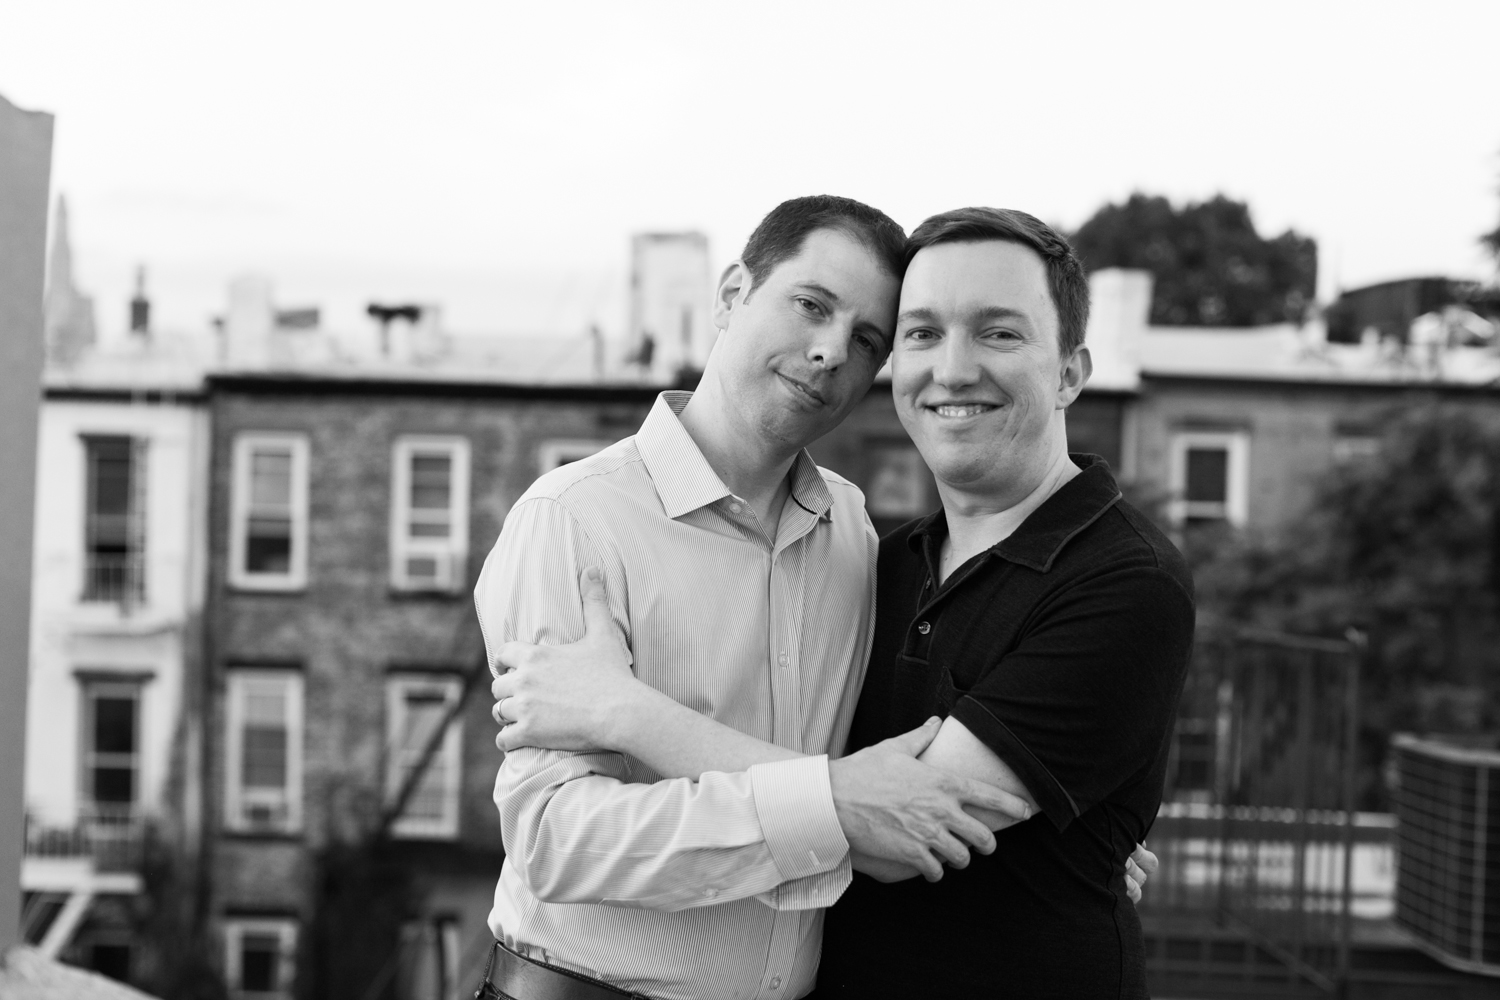 Park Slope engagement photos from Amber Marlow